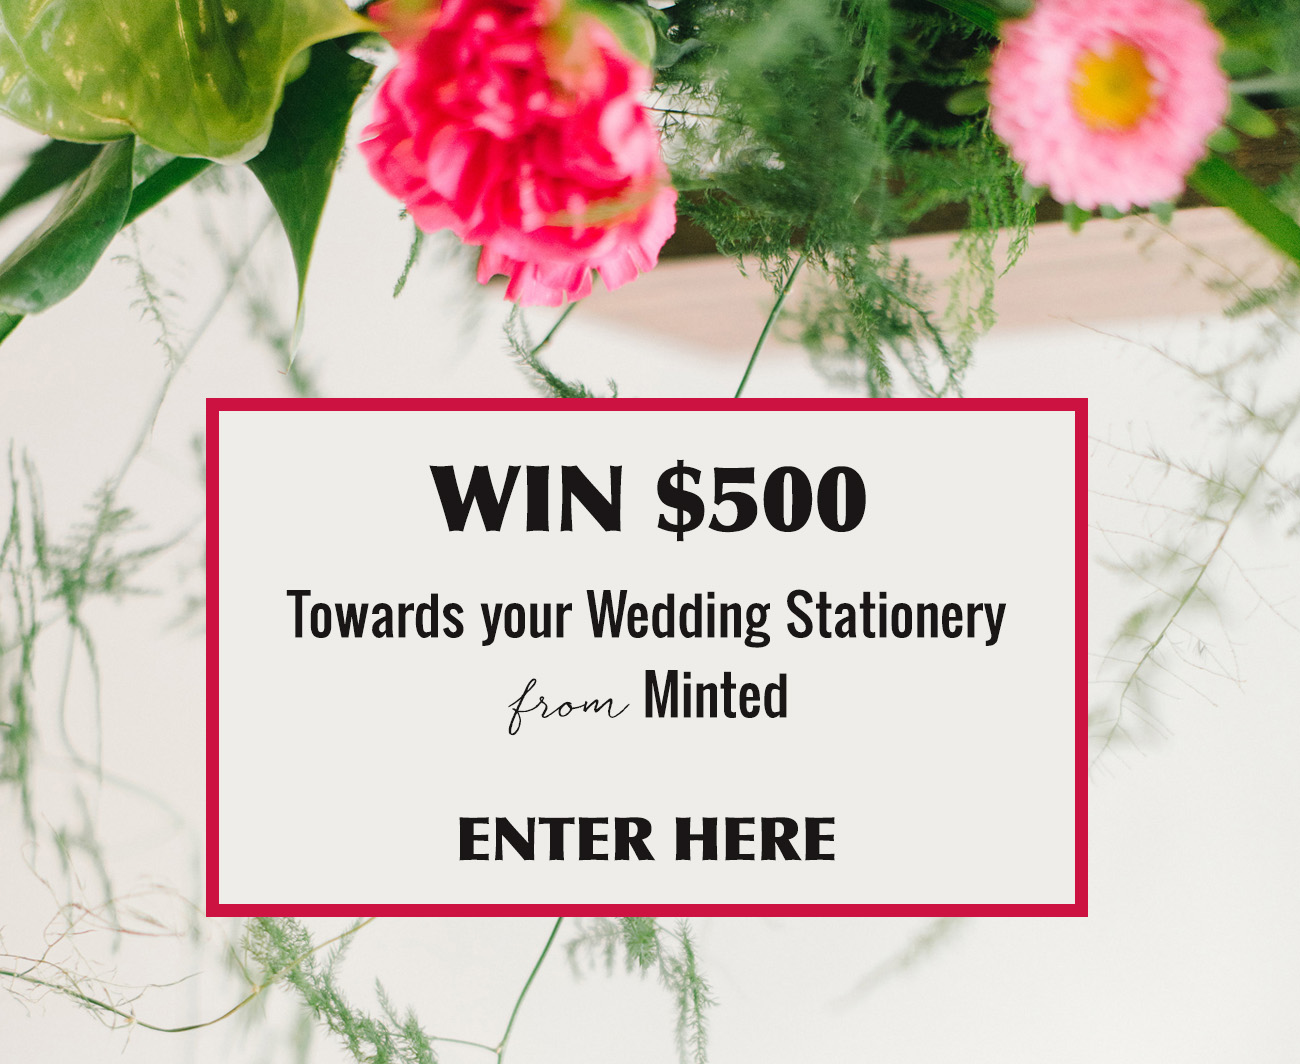 WIN $500 towards Minted Stationery